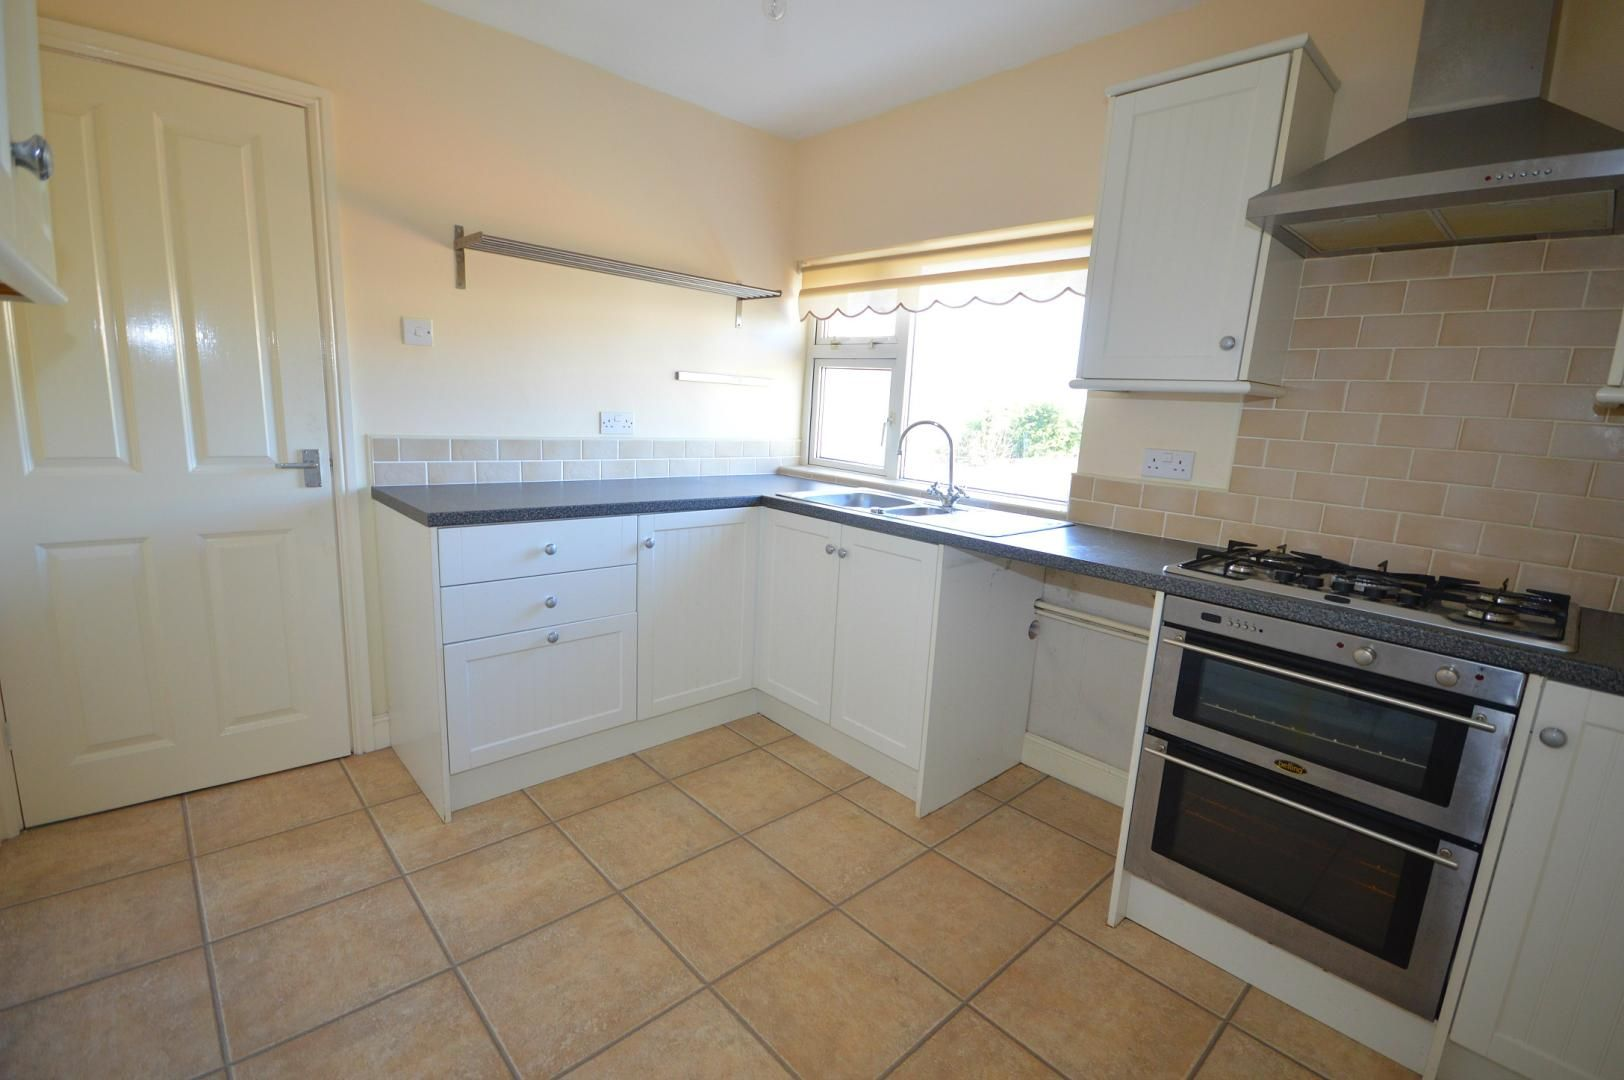 2 bed flat to rent in Glosters Parade - Property Image 1